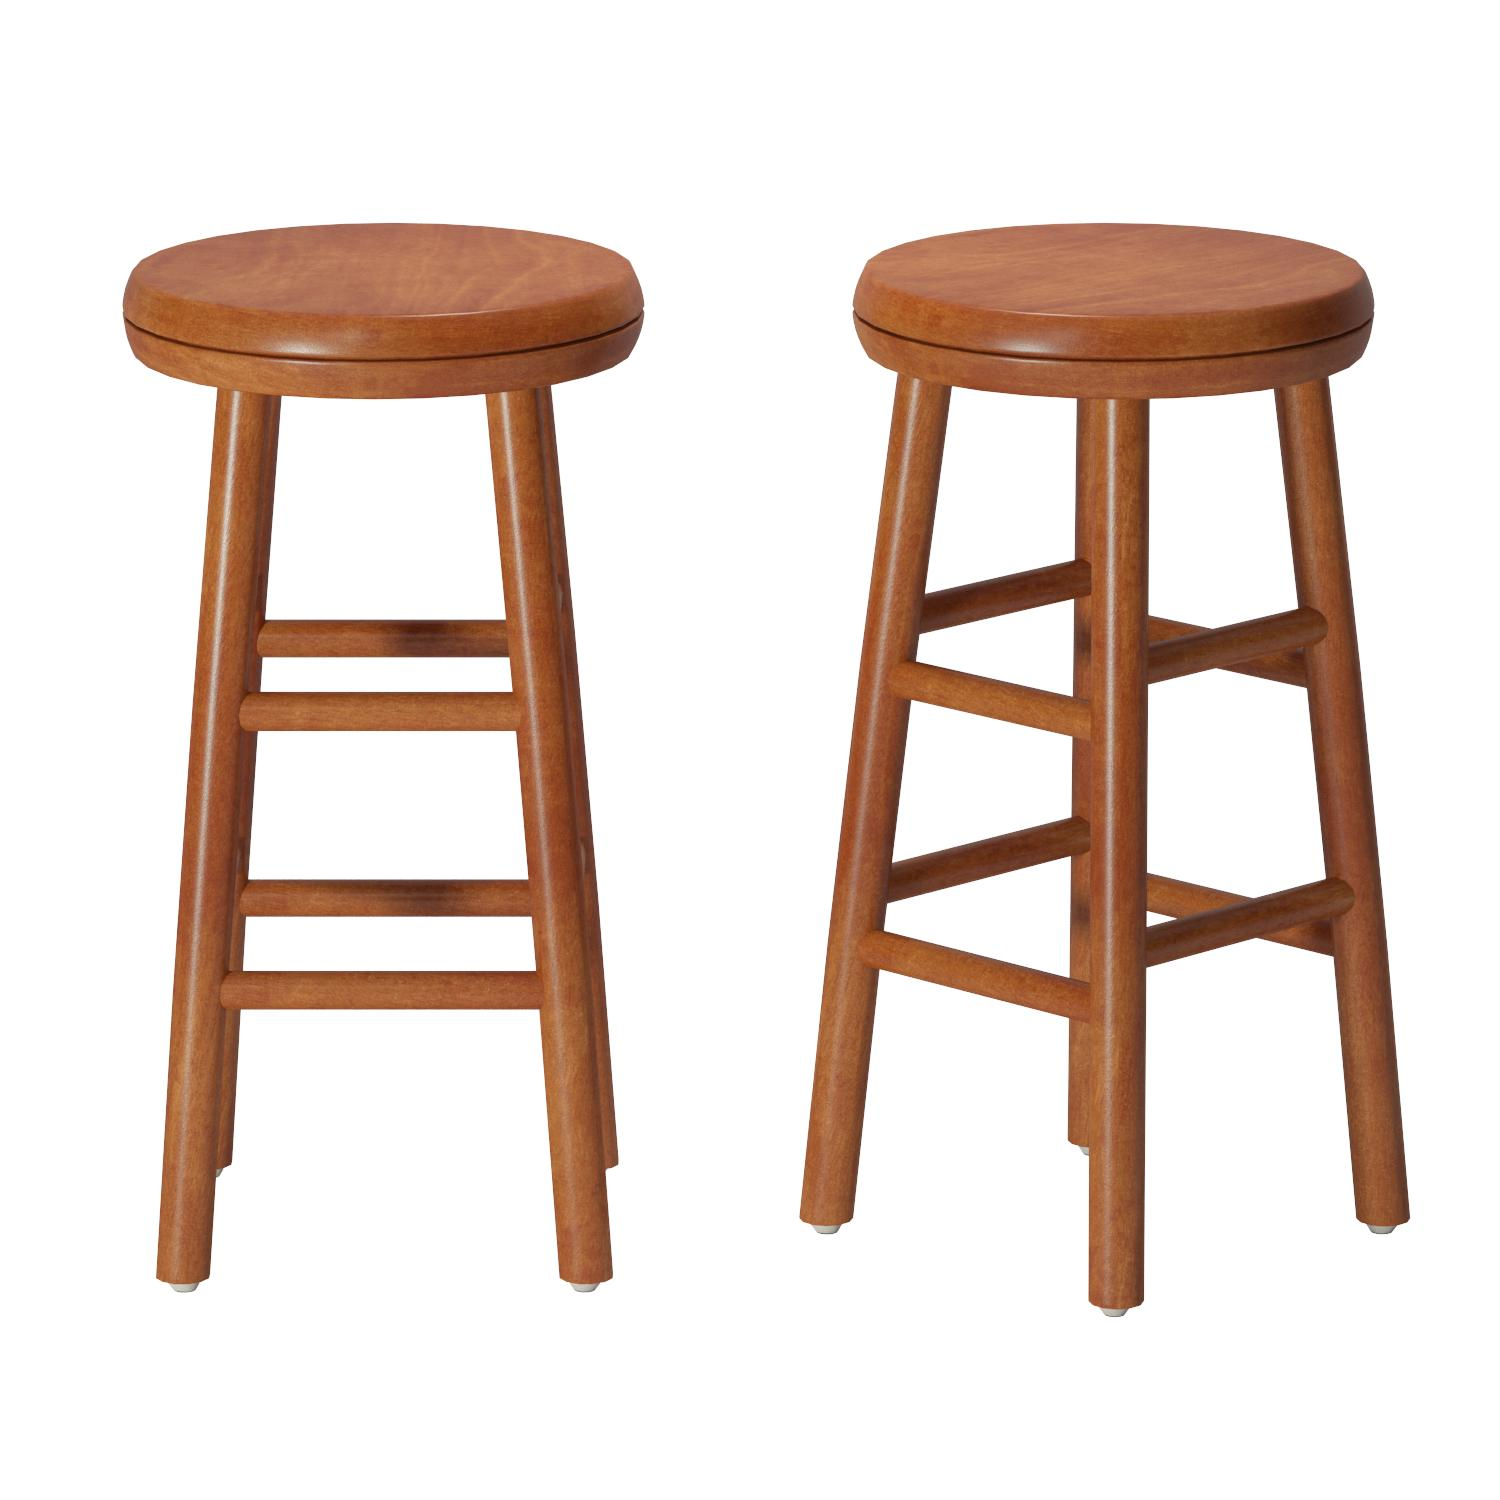 Inspirational Office Star Bar Stools